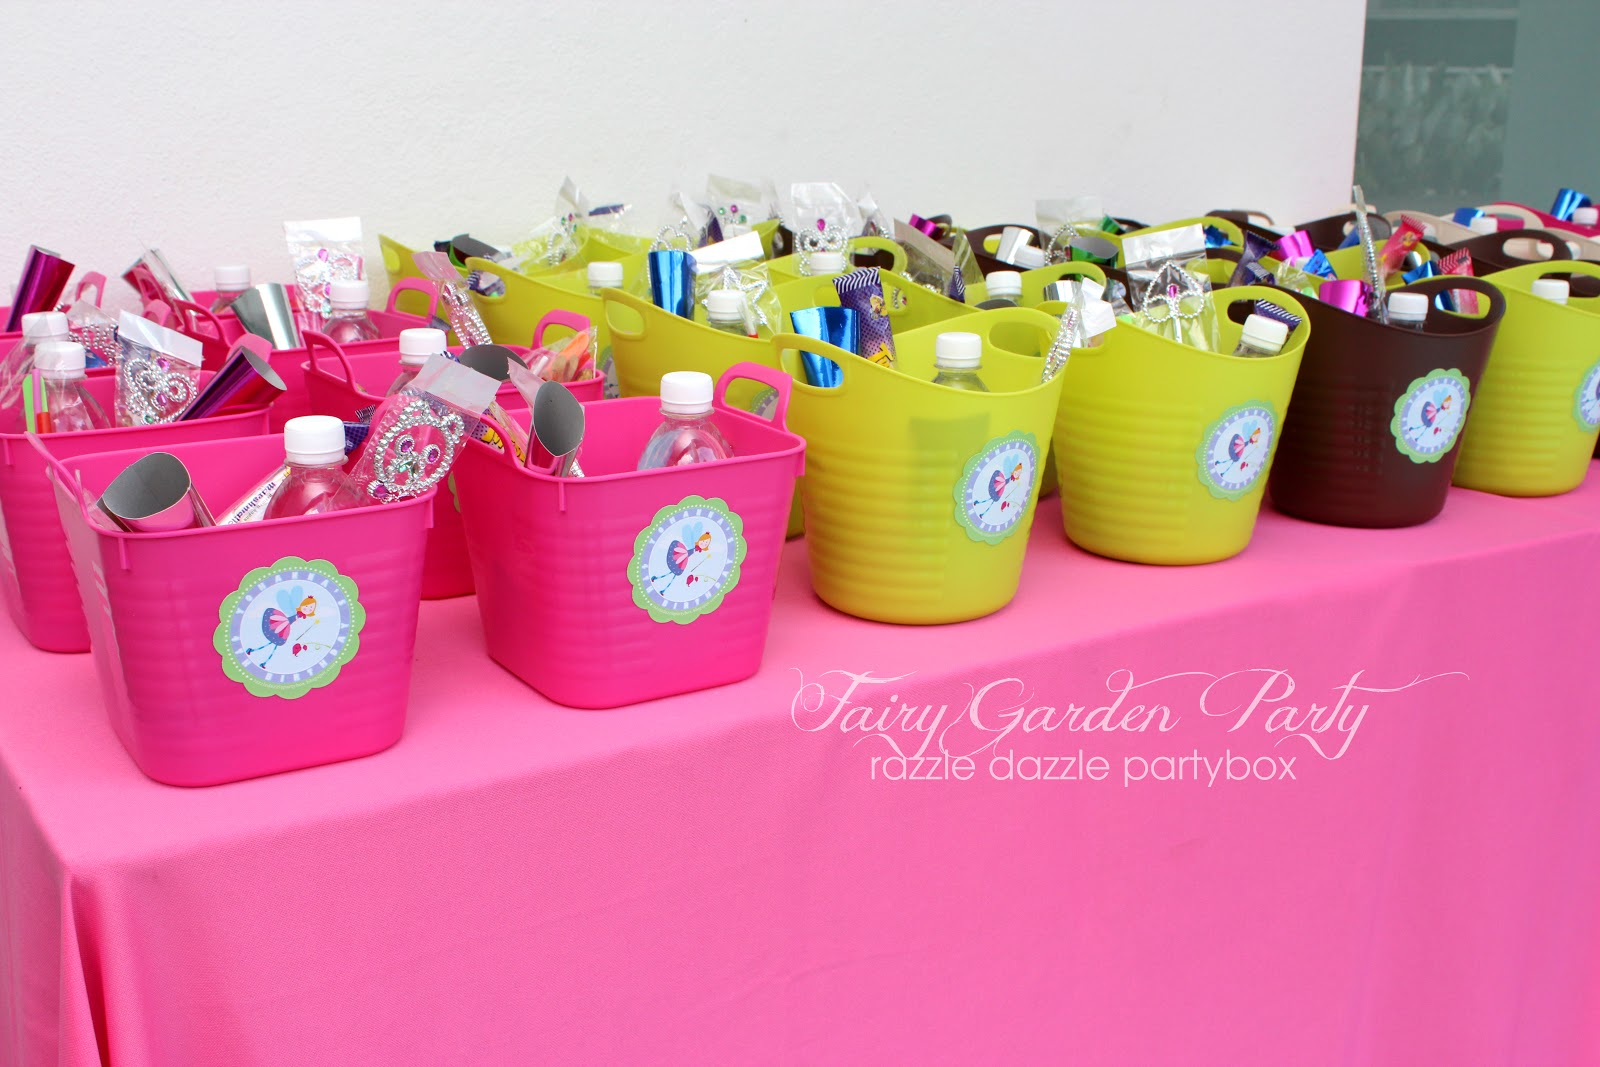 Razzle Dazzle Party Box Themed Birthday Party Fairy Garden Party